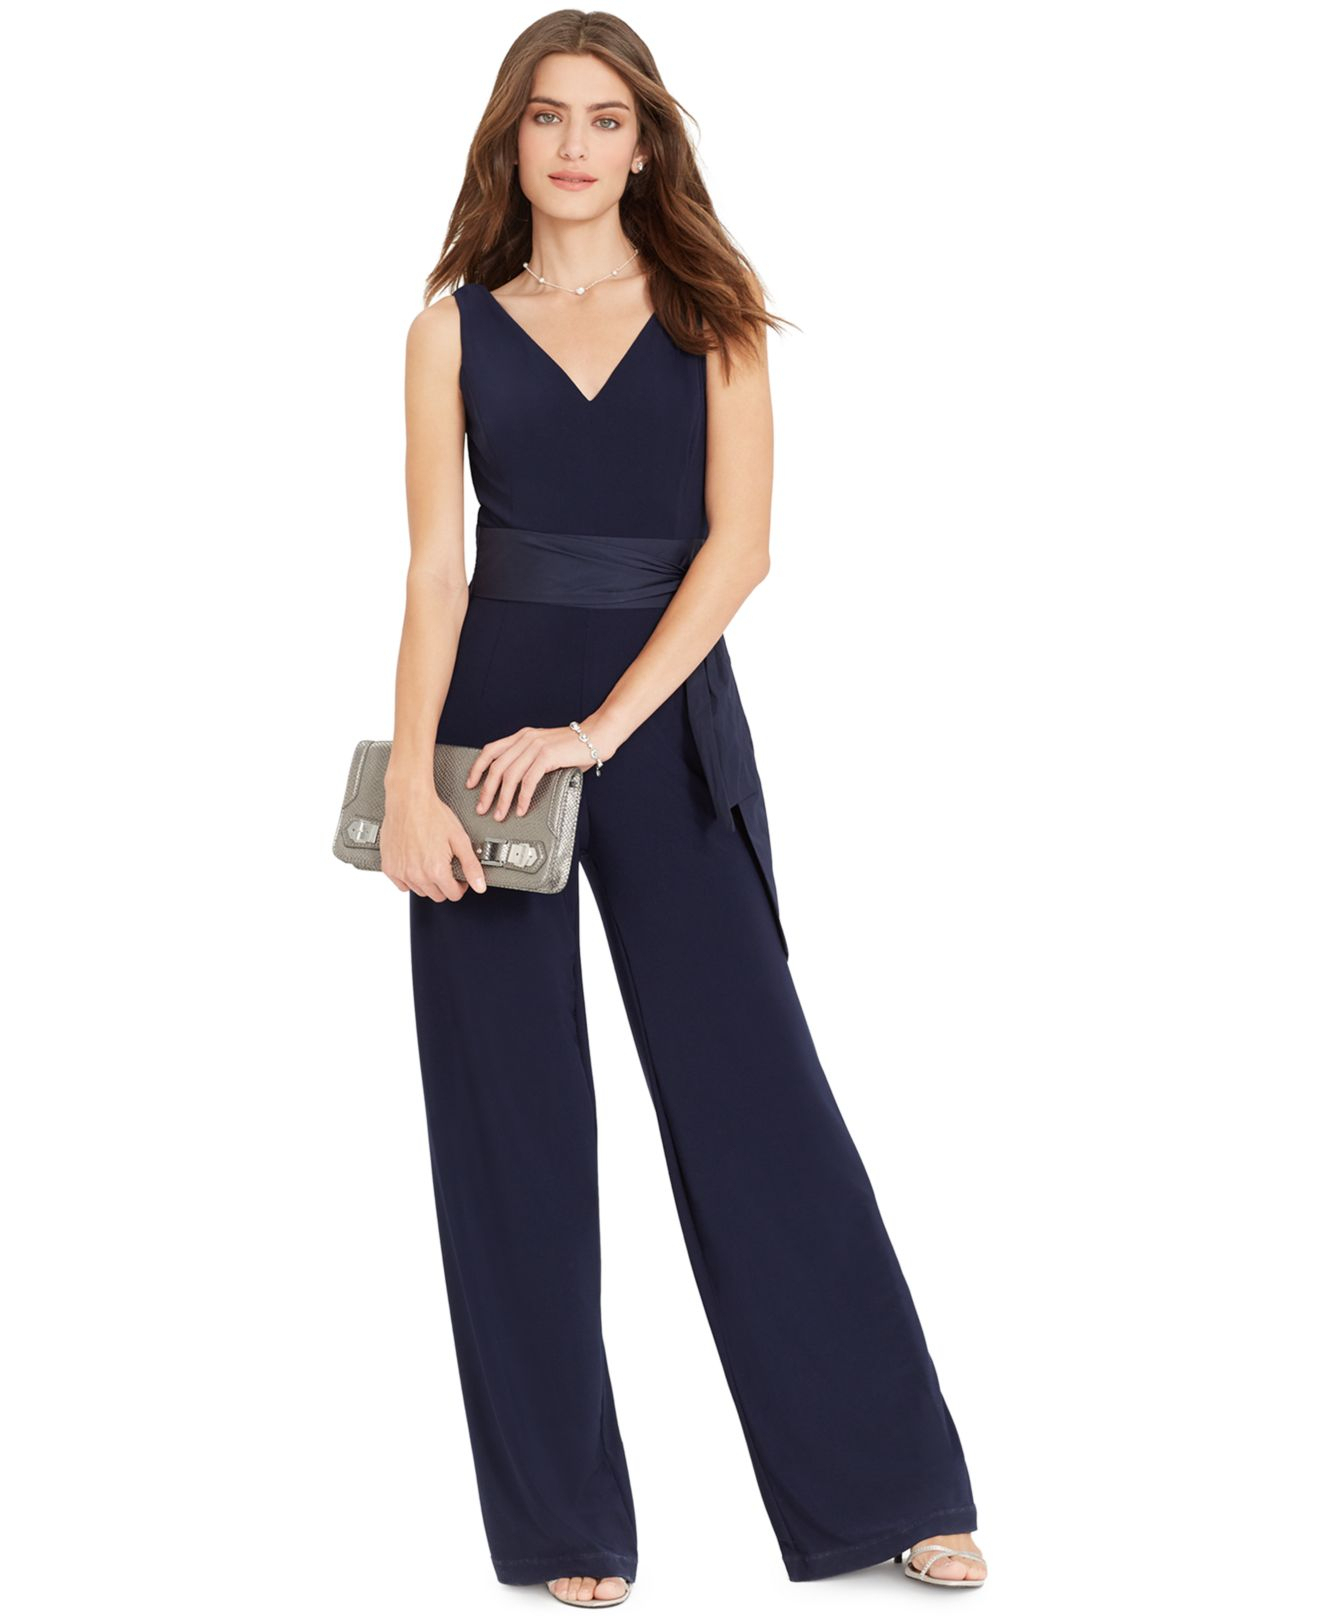 a458d53e3b27 Lyst - Lauren by Ralph Lauren Sleeveless Wide-Leg Jumpsuit in Blue